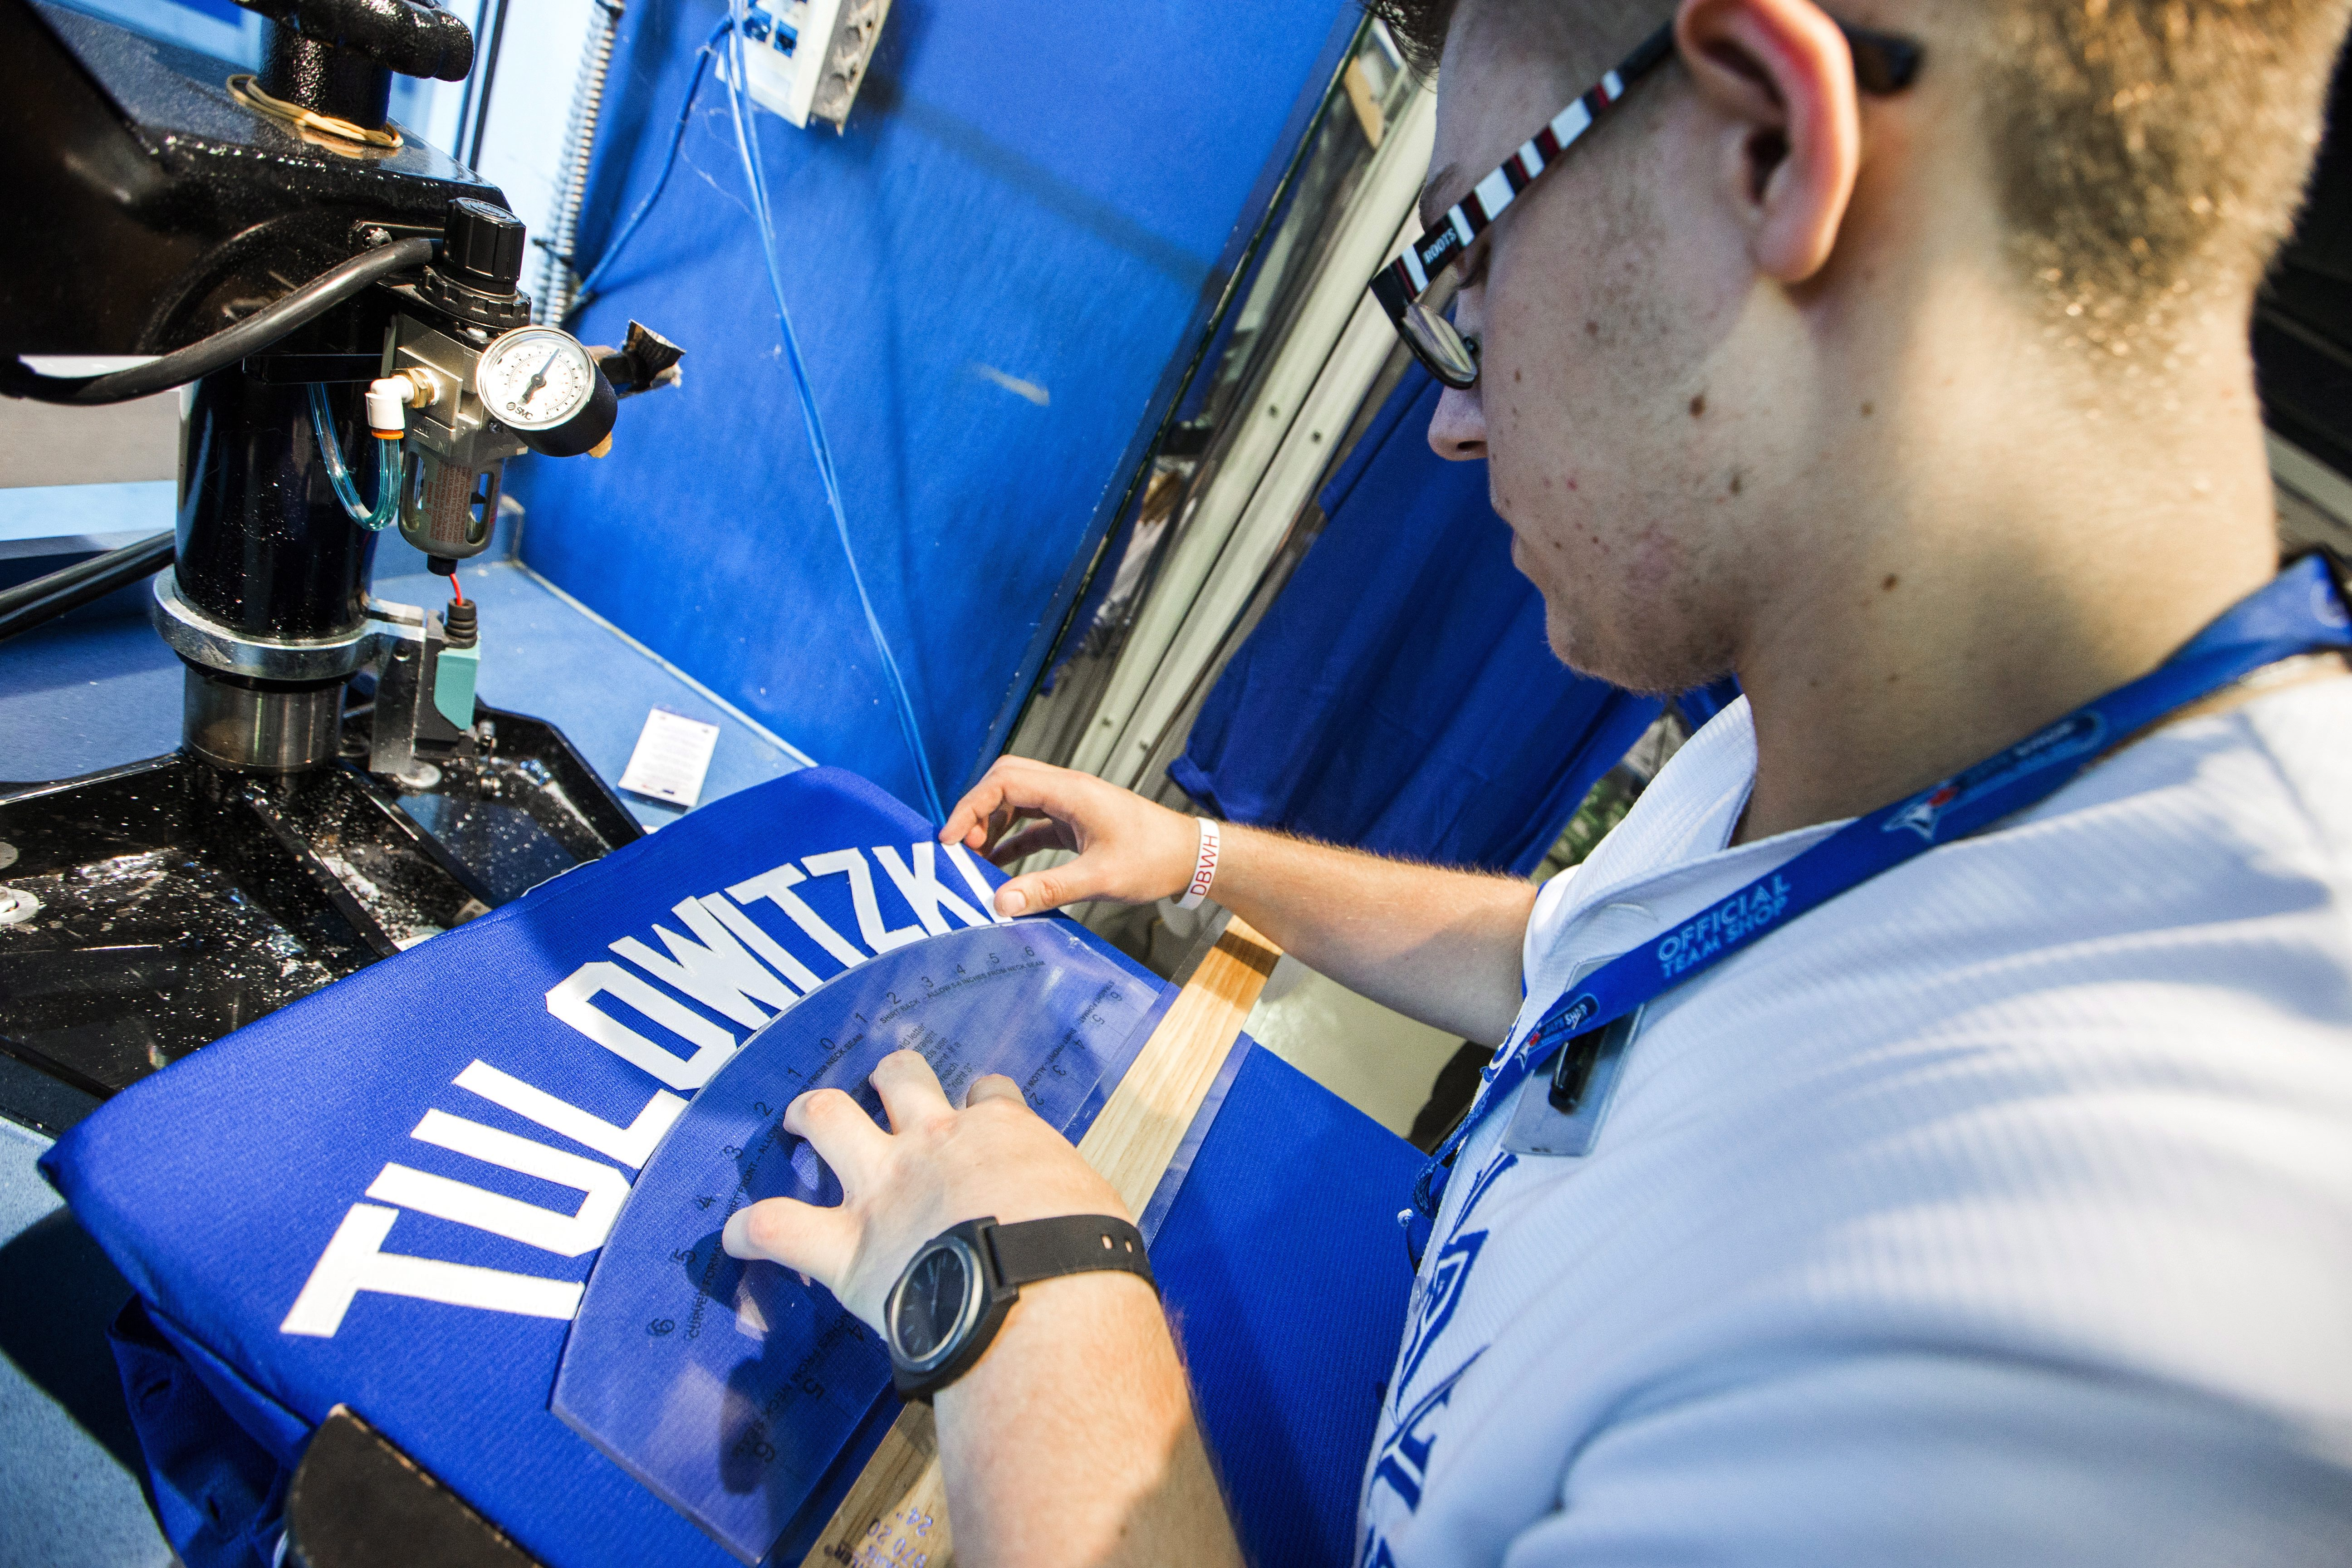 Toronto Blue Jays store employee Nico Canavo makes a Troy Tulowitzki jersey in Toronto, Tuesday July 28, 2015. The Colorado Rockies and Toronto Blue Jays have swapped star shortstops. The teams confirmed the blockbuster trade Tuesday, July 28, 2015, that